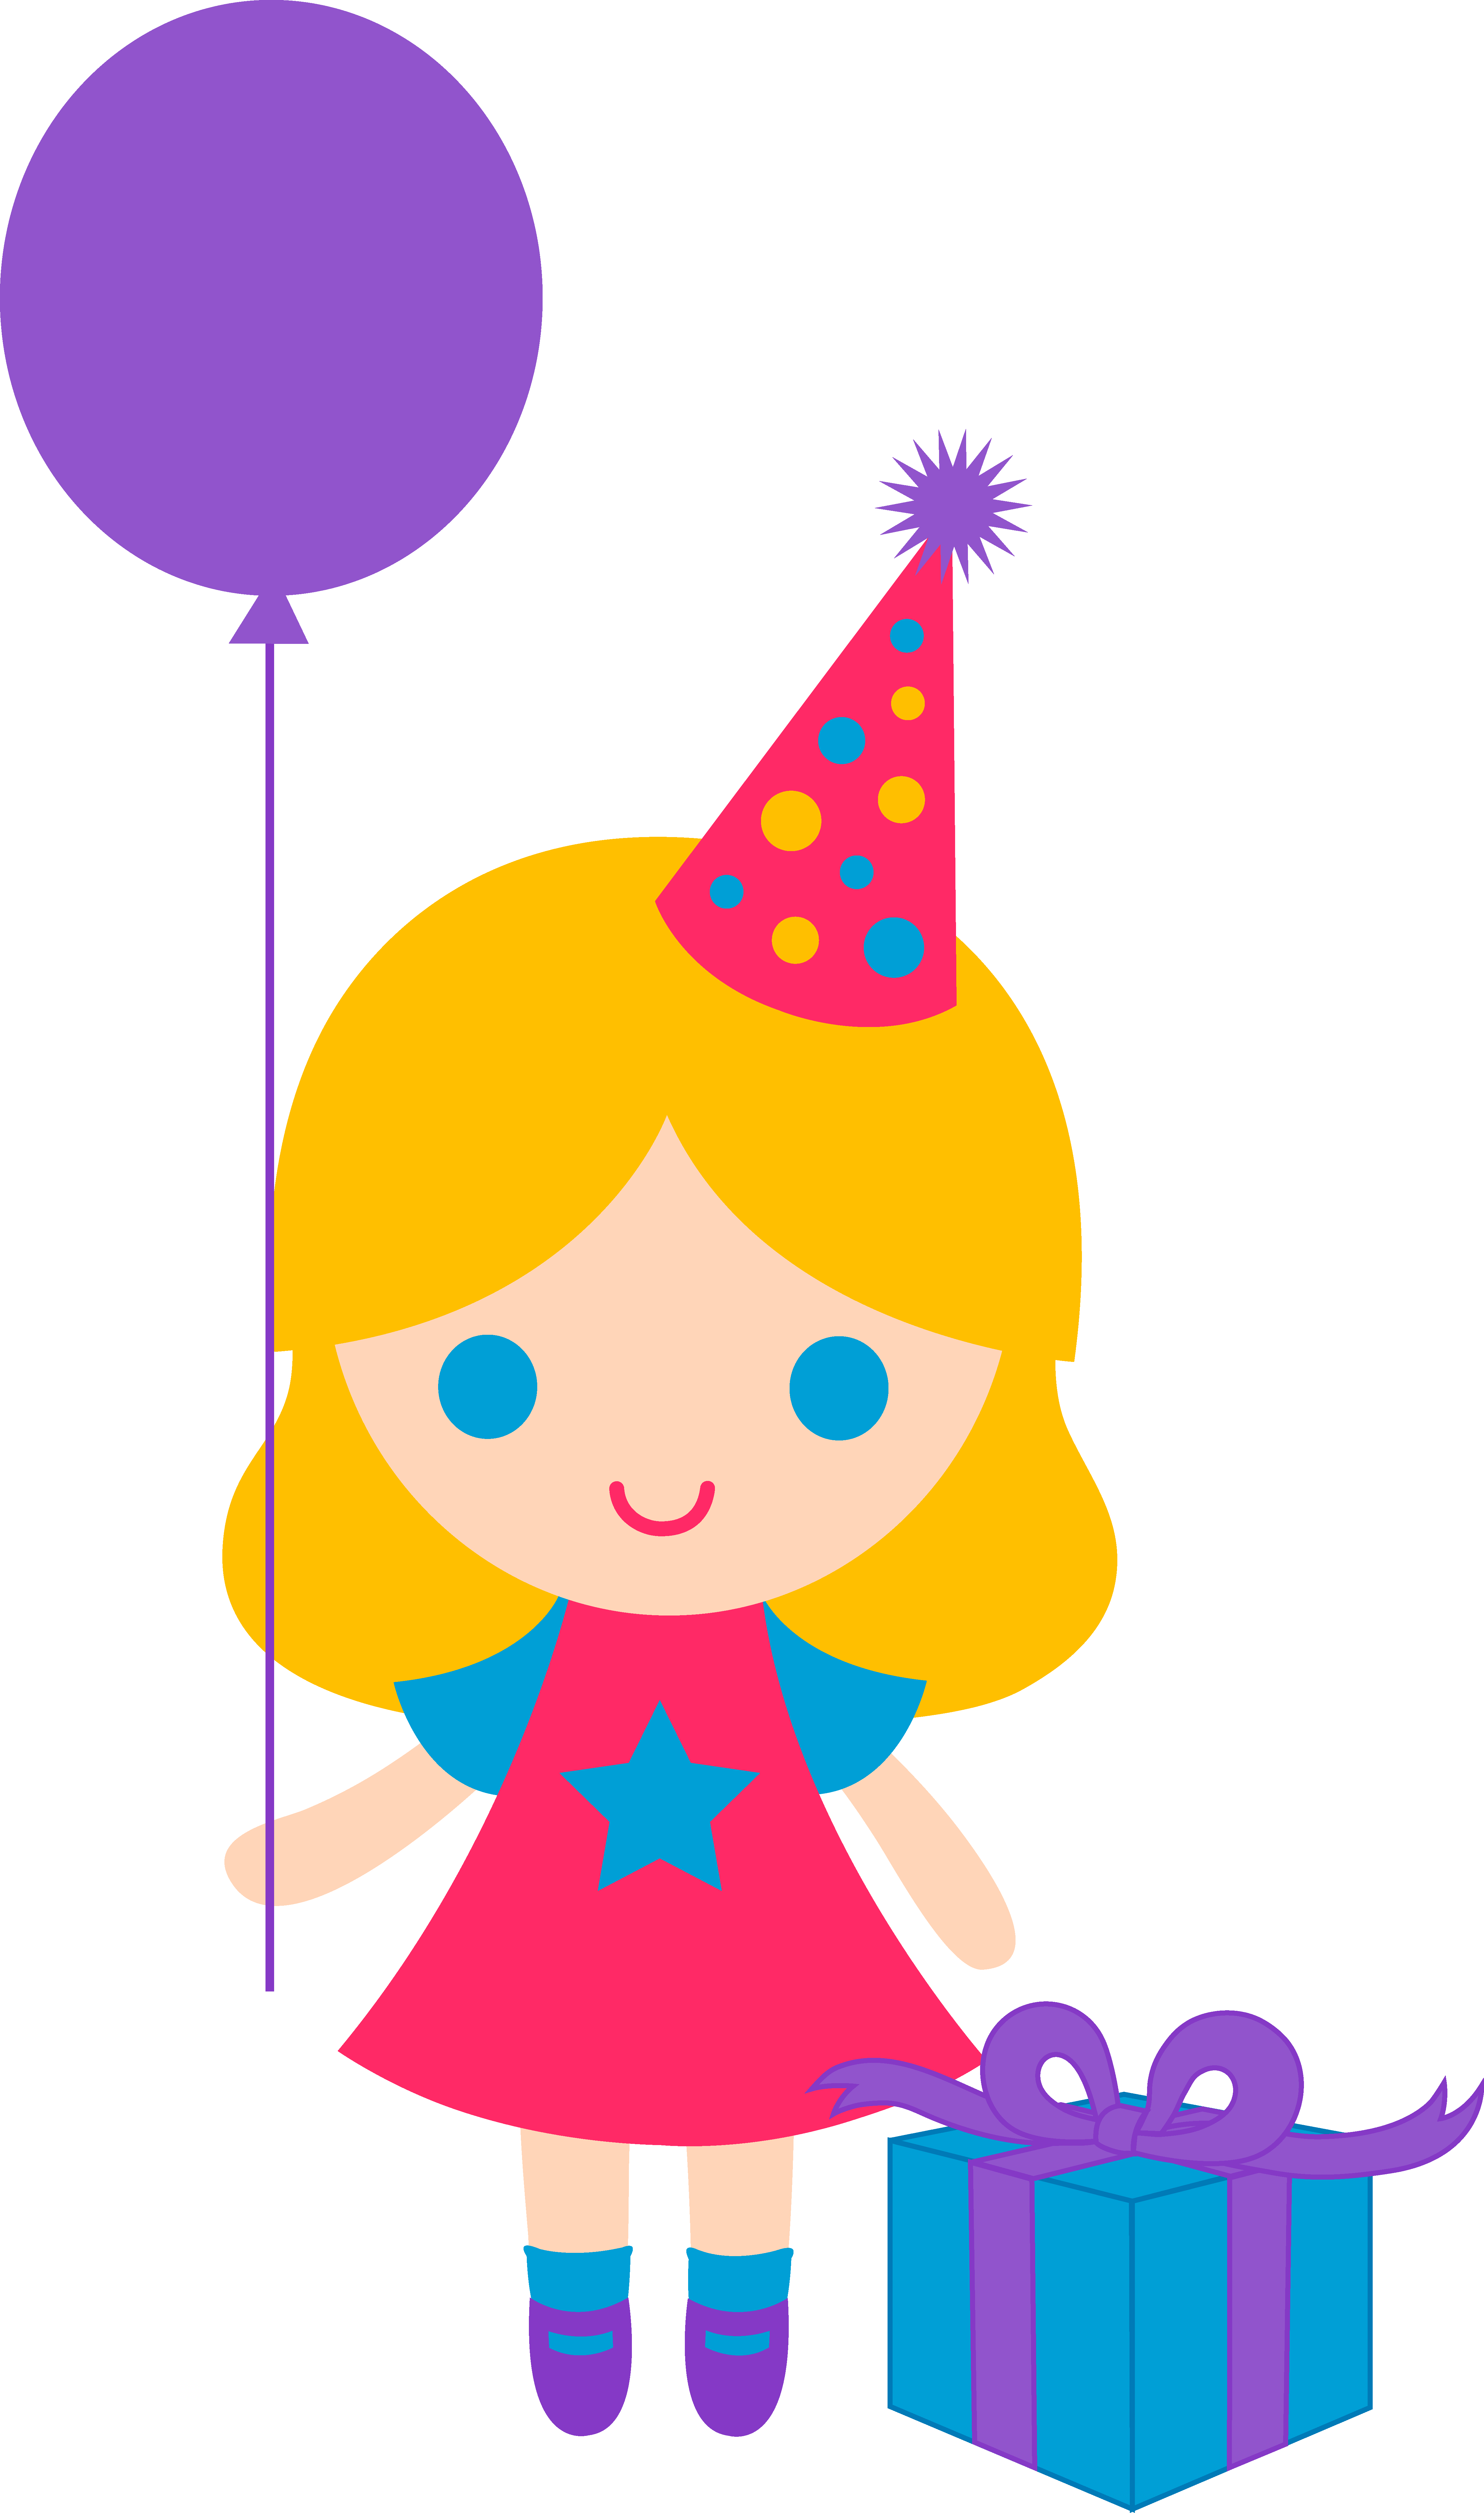 Free Baby Birthday Cliparts, Download Free Clip Art, Free.